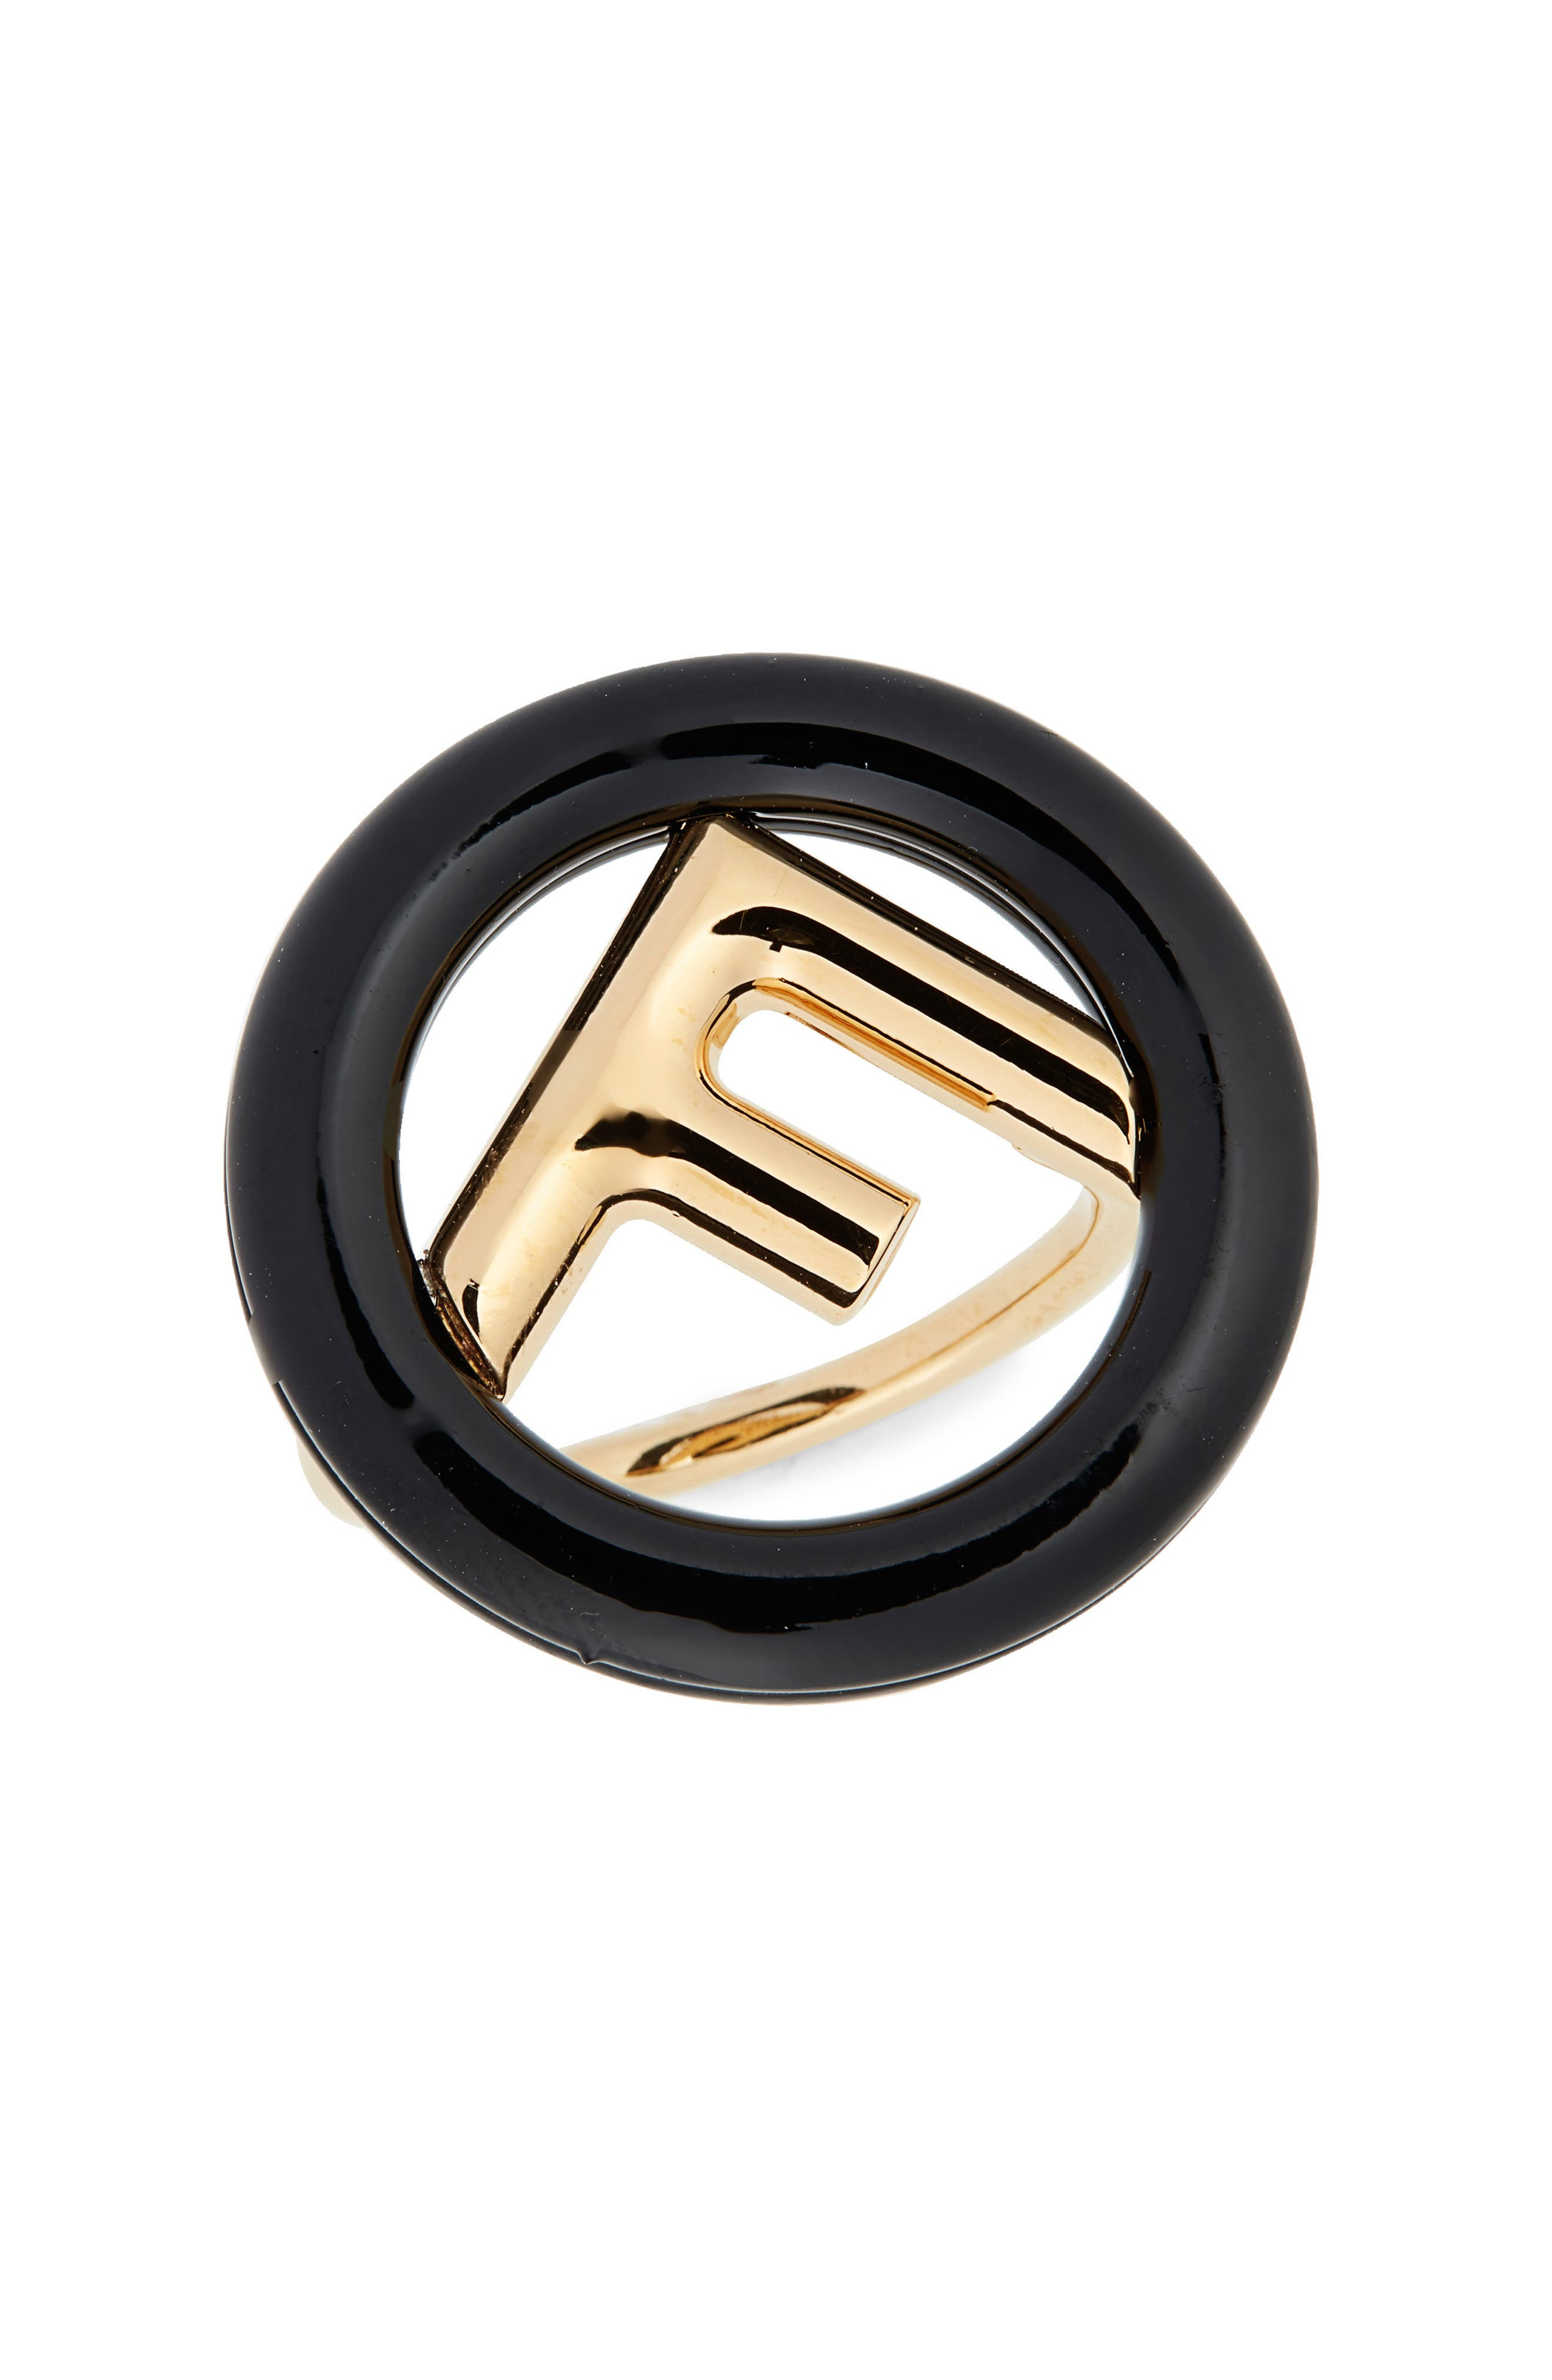 FENDI, F is For Fendi Statement Ring, Main thumbnail 1, color, BLACK